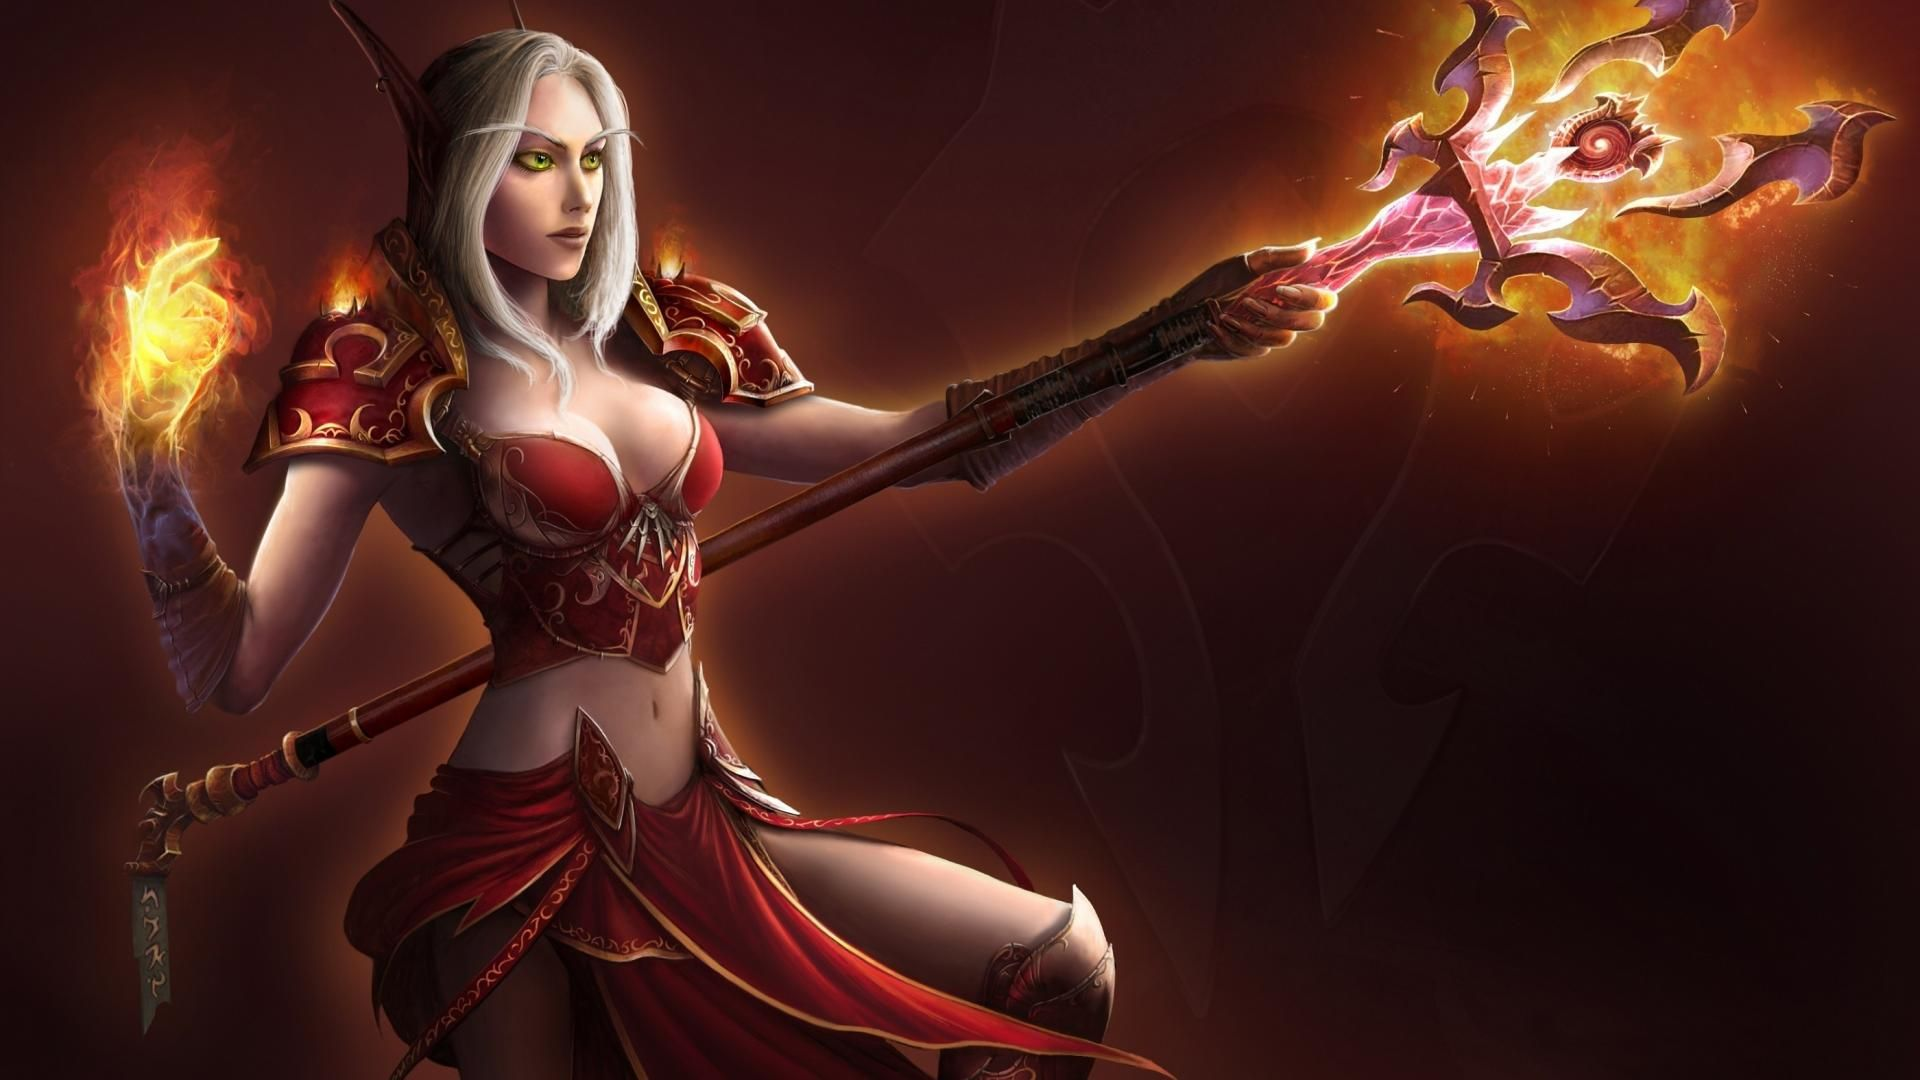 Blood elves girls erotic image